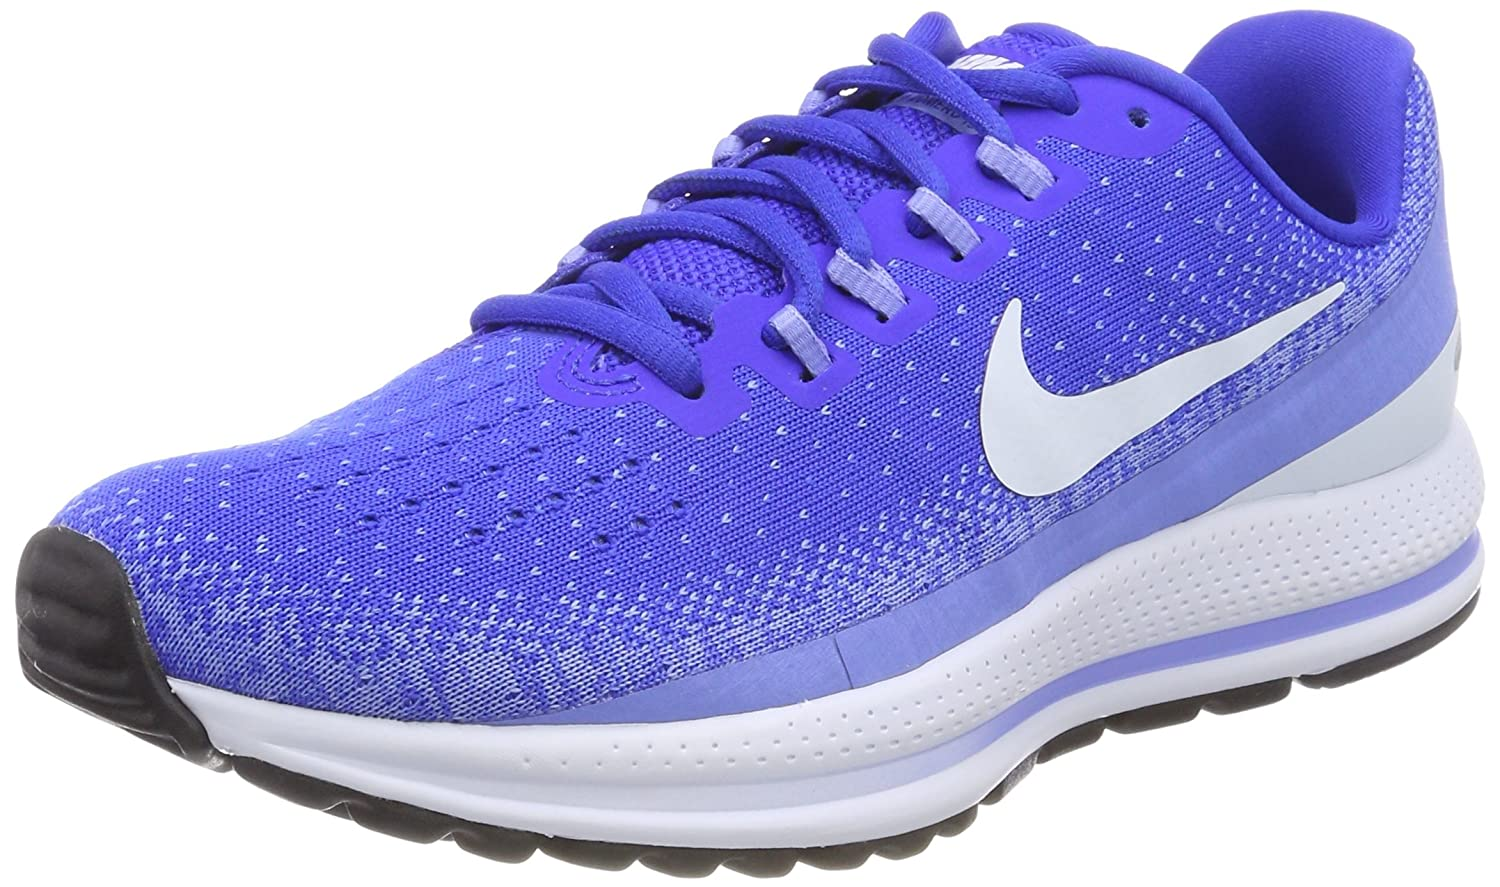 NIKE Women's Air Zoom Vomero 13 Running Shoe B077W2LZCW 6 B(M) US|Racer Blue/Blue Tint